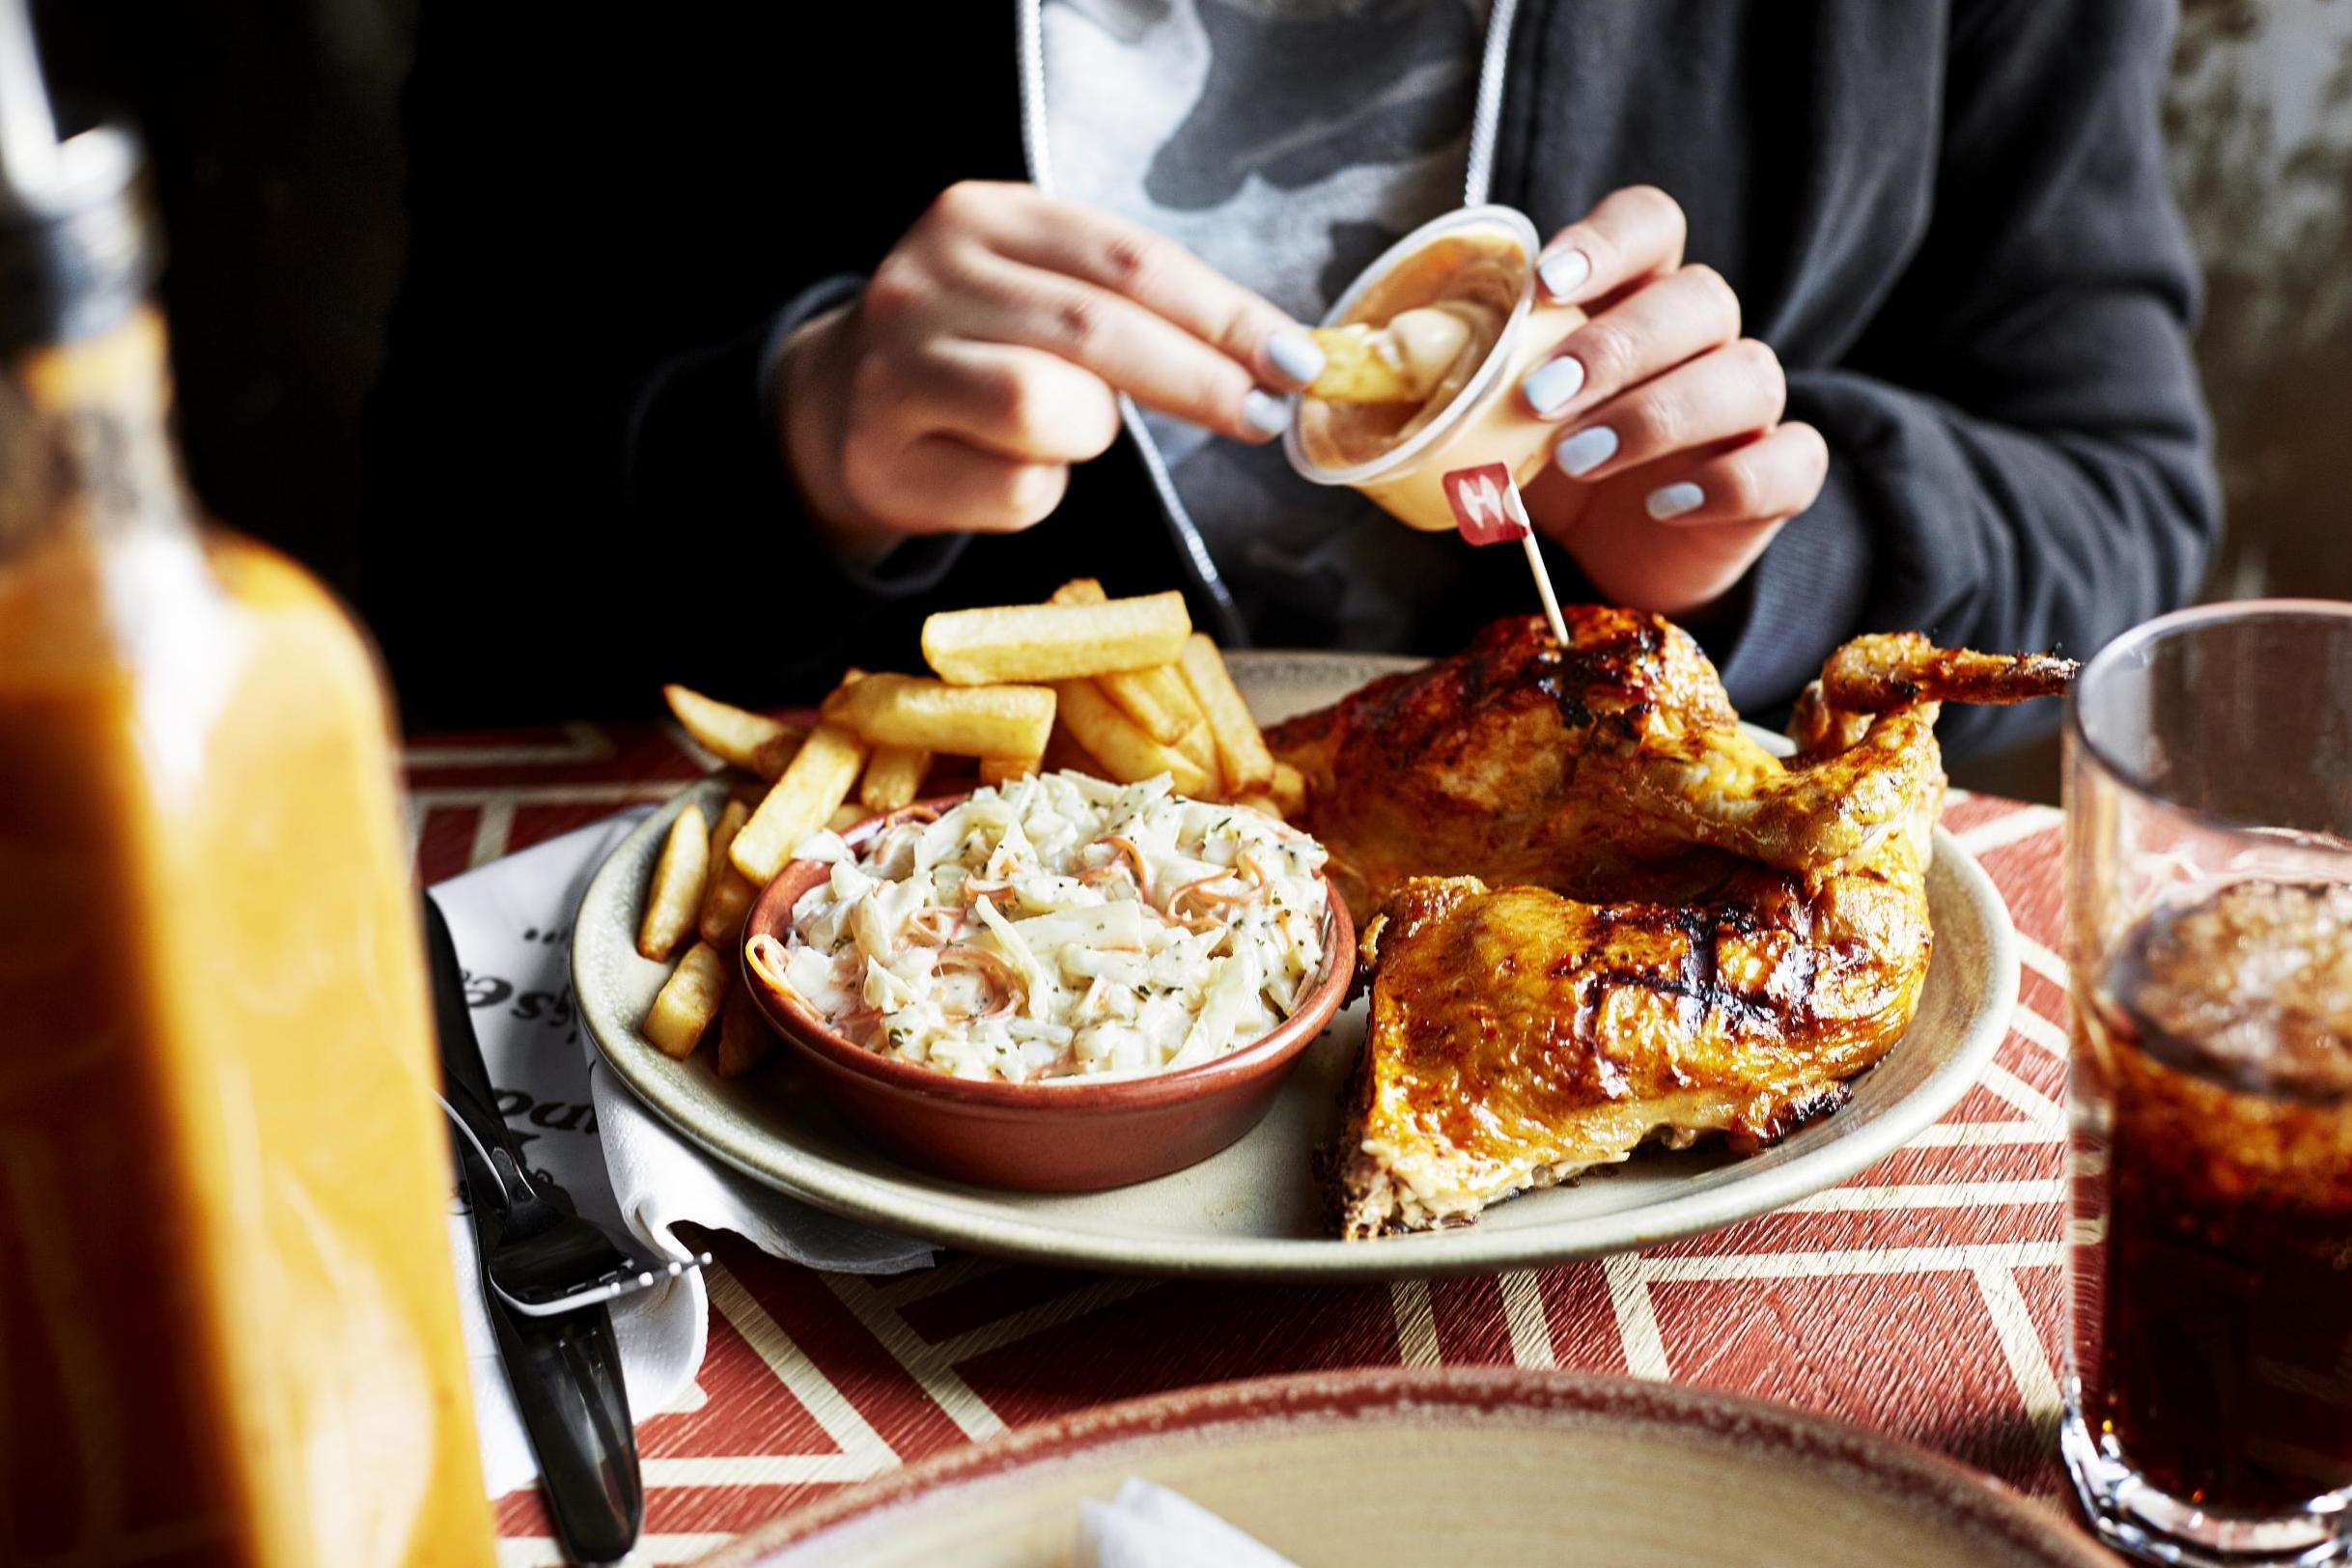 Nando's is giving away free meals in form of giant loyalty cards – here's how you can get one